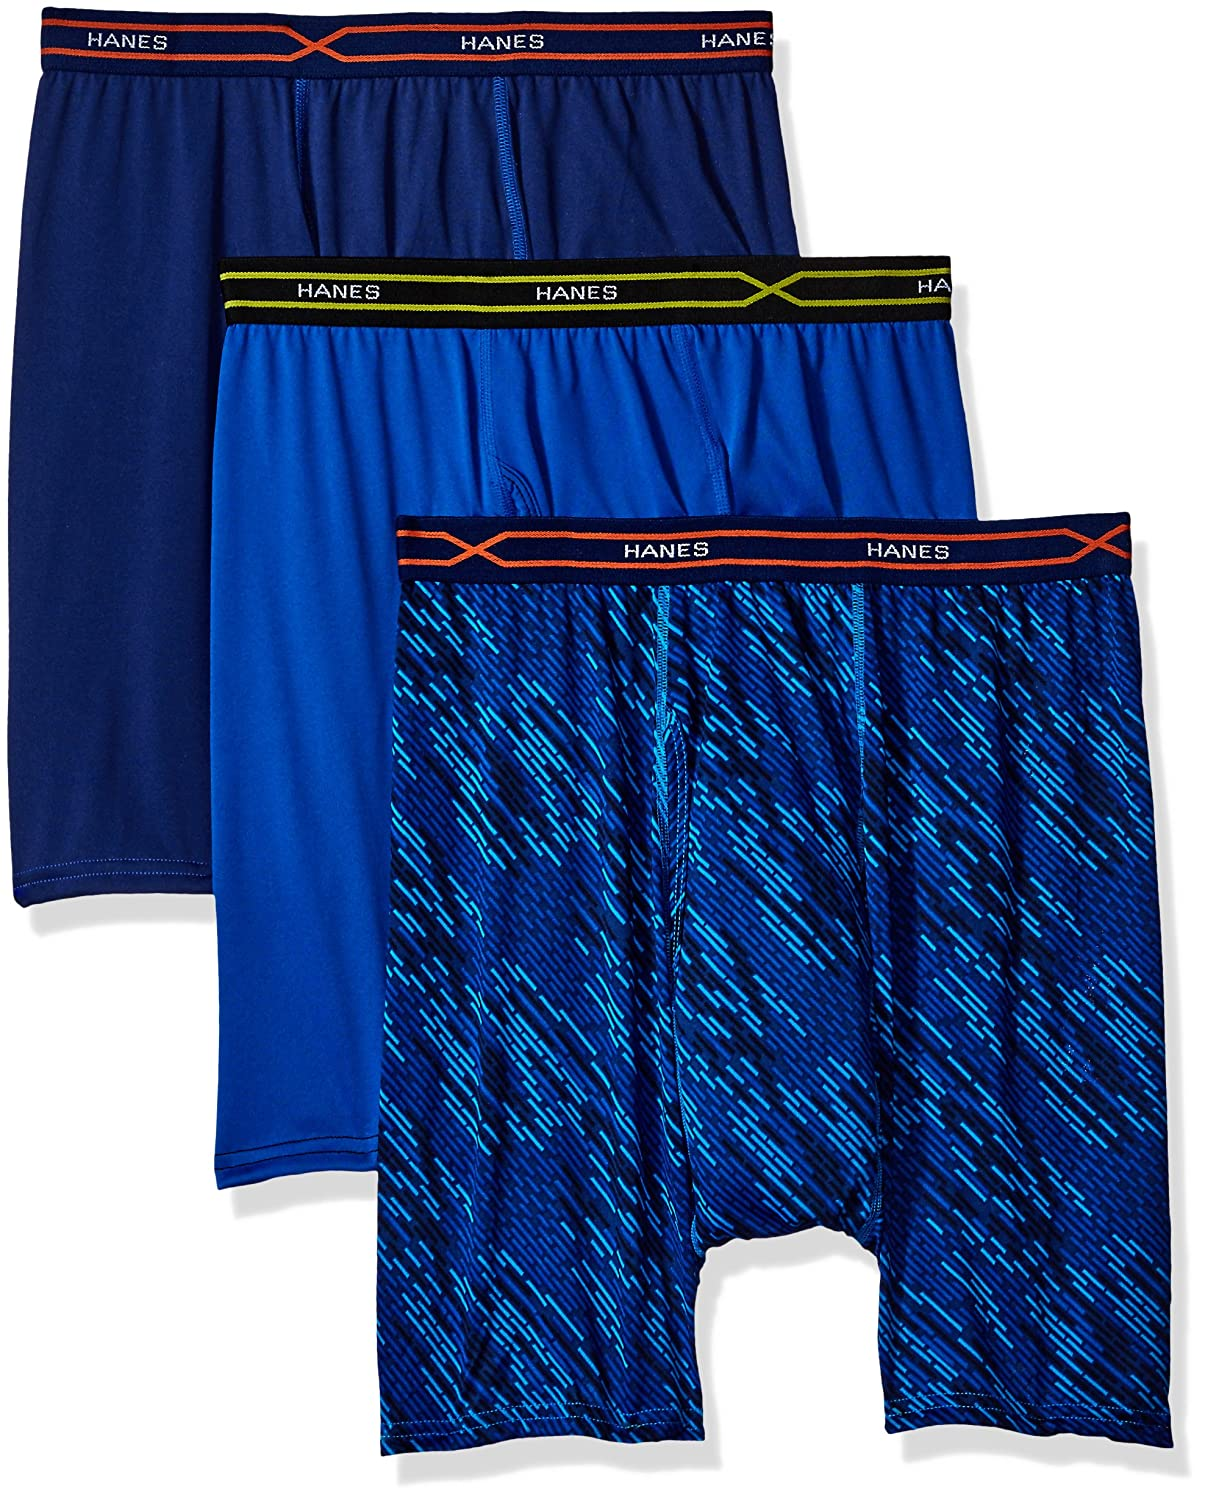 Hanes Men's 3-Pack X-Temp Performance Cool Boxer Brief (1 Print/2 Solids)